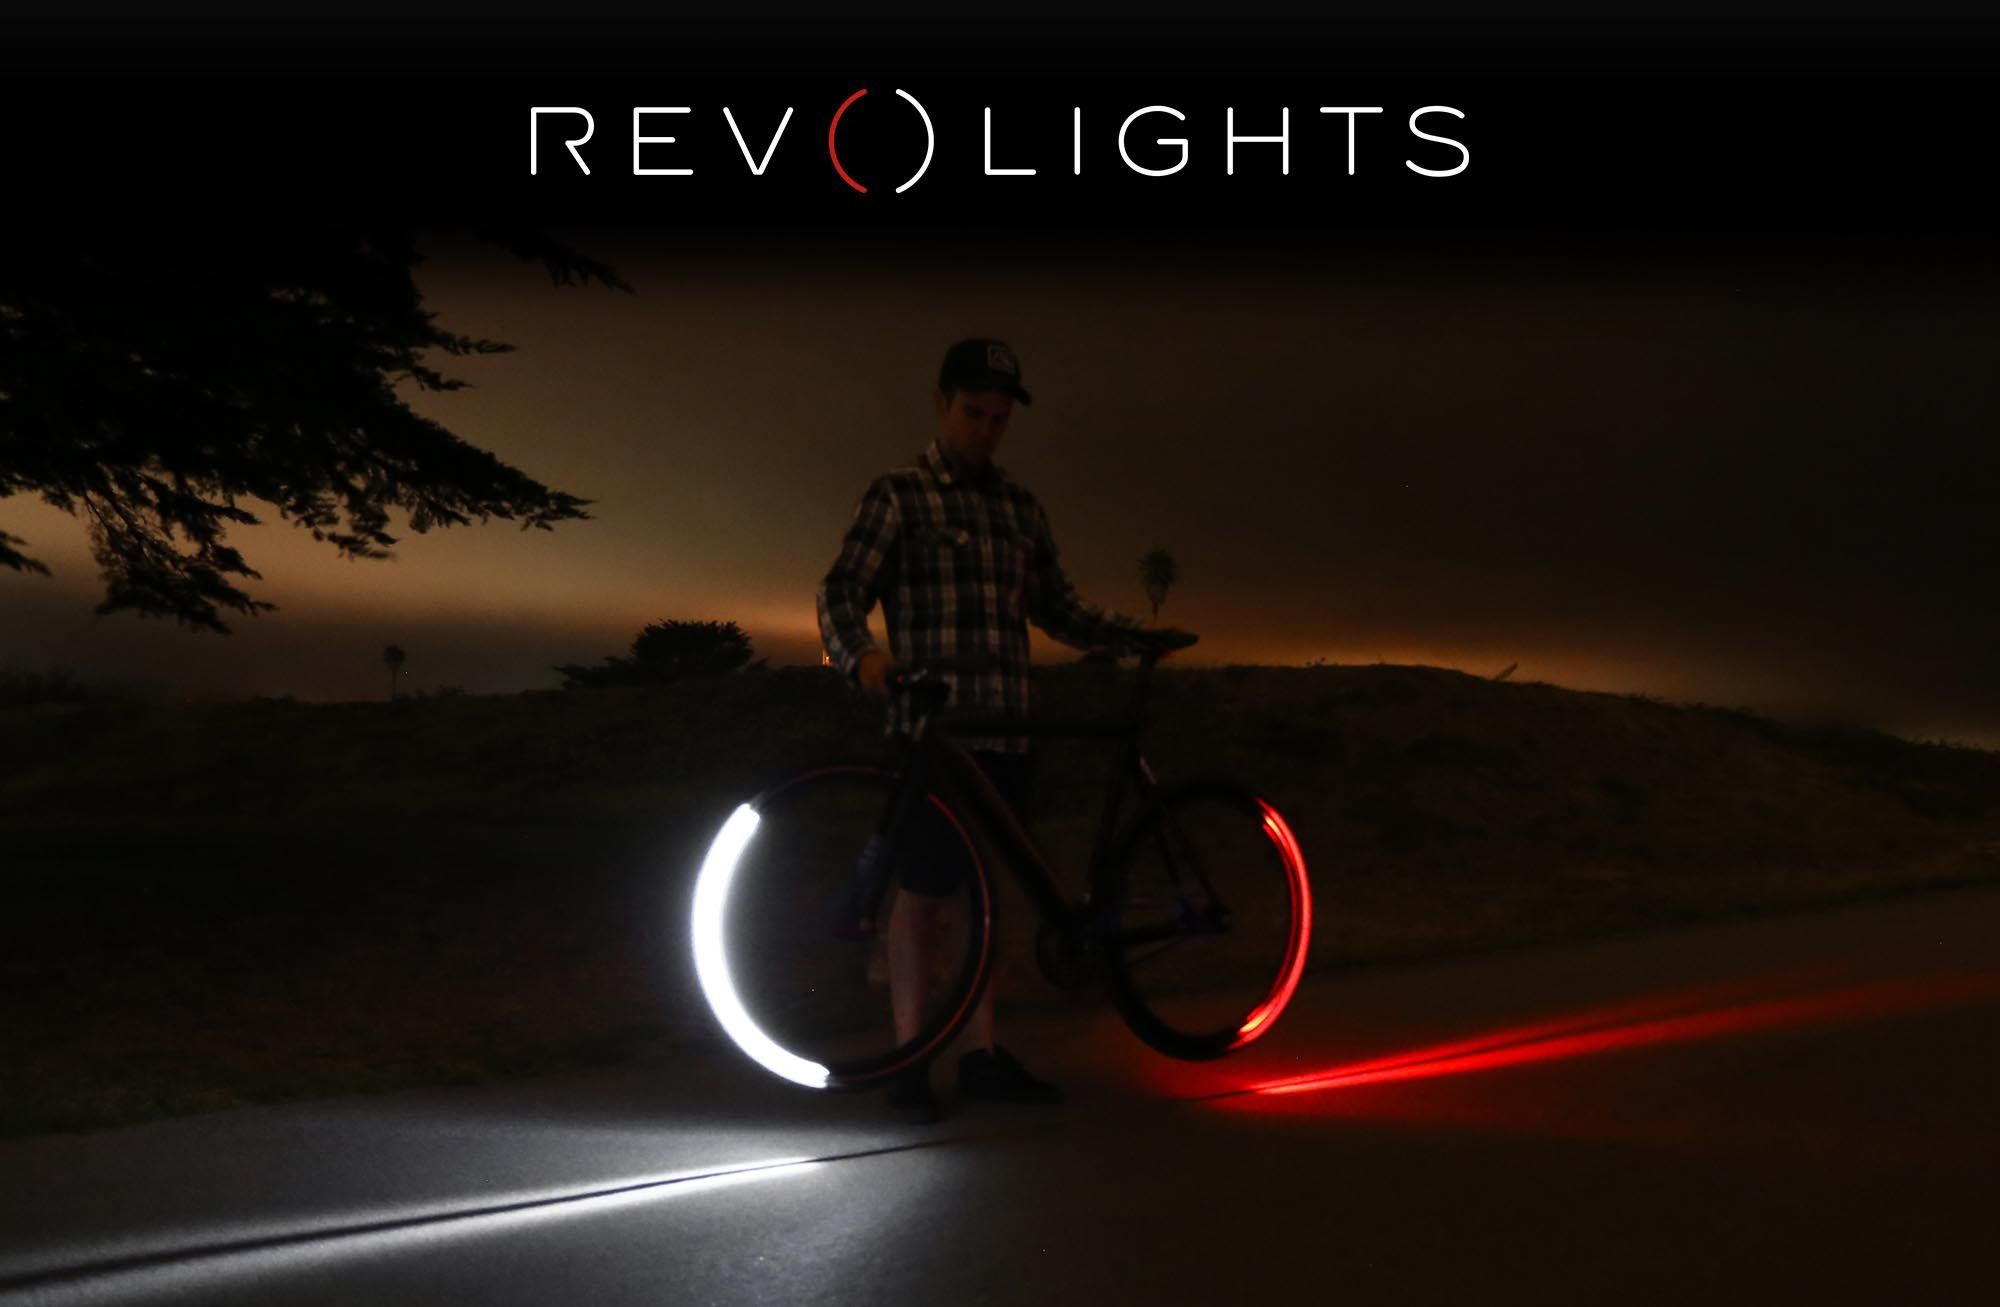 Revolights bike lights are high quality wheel mounted LED